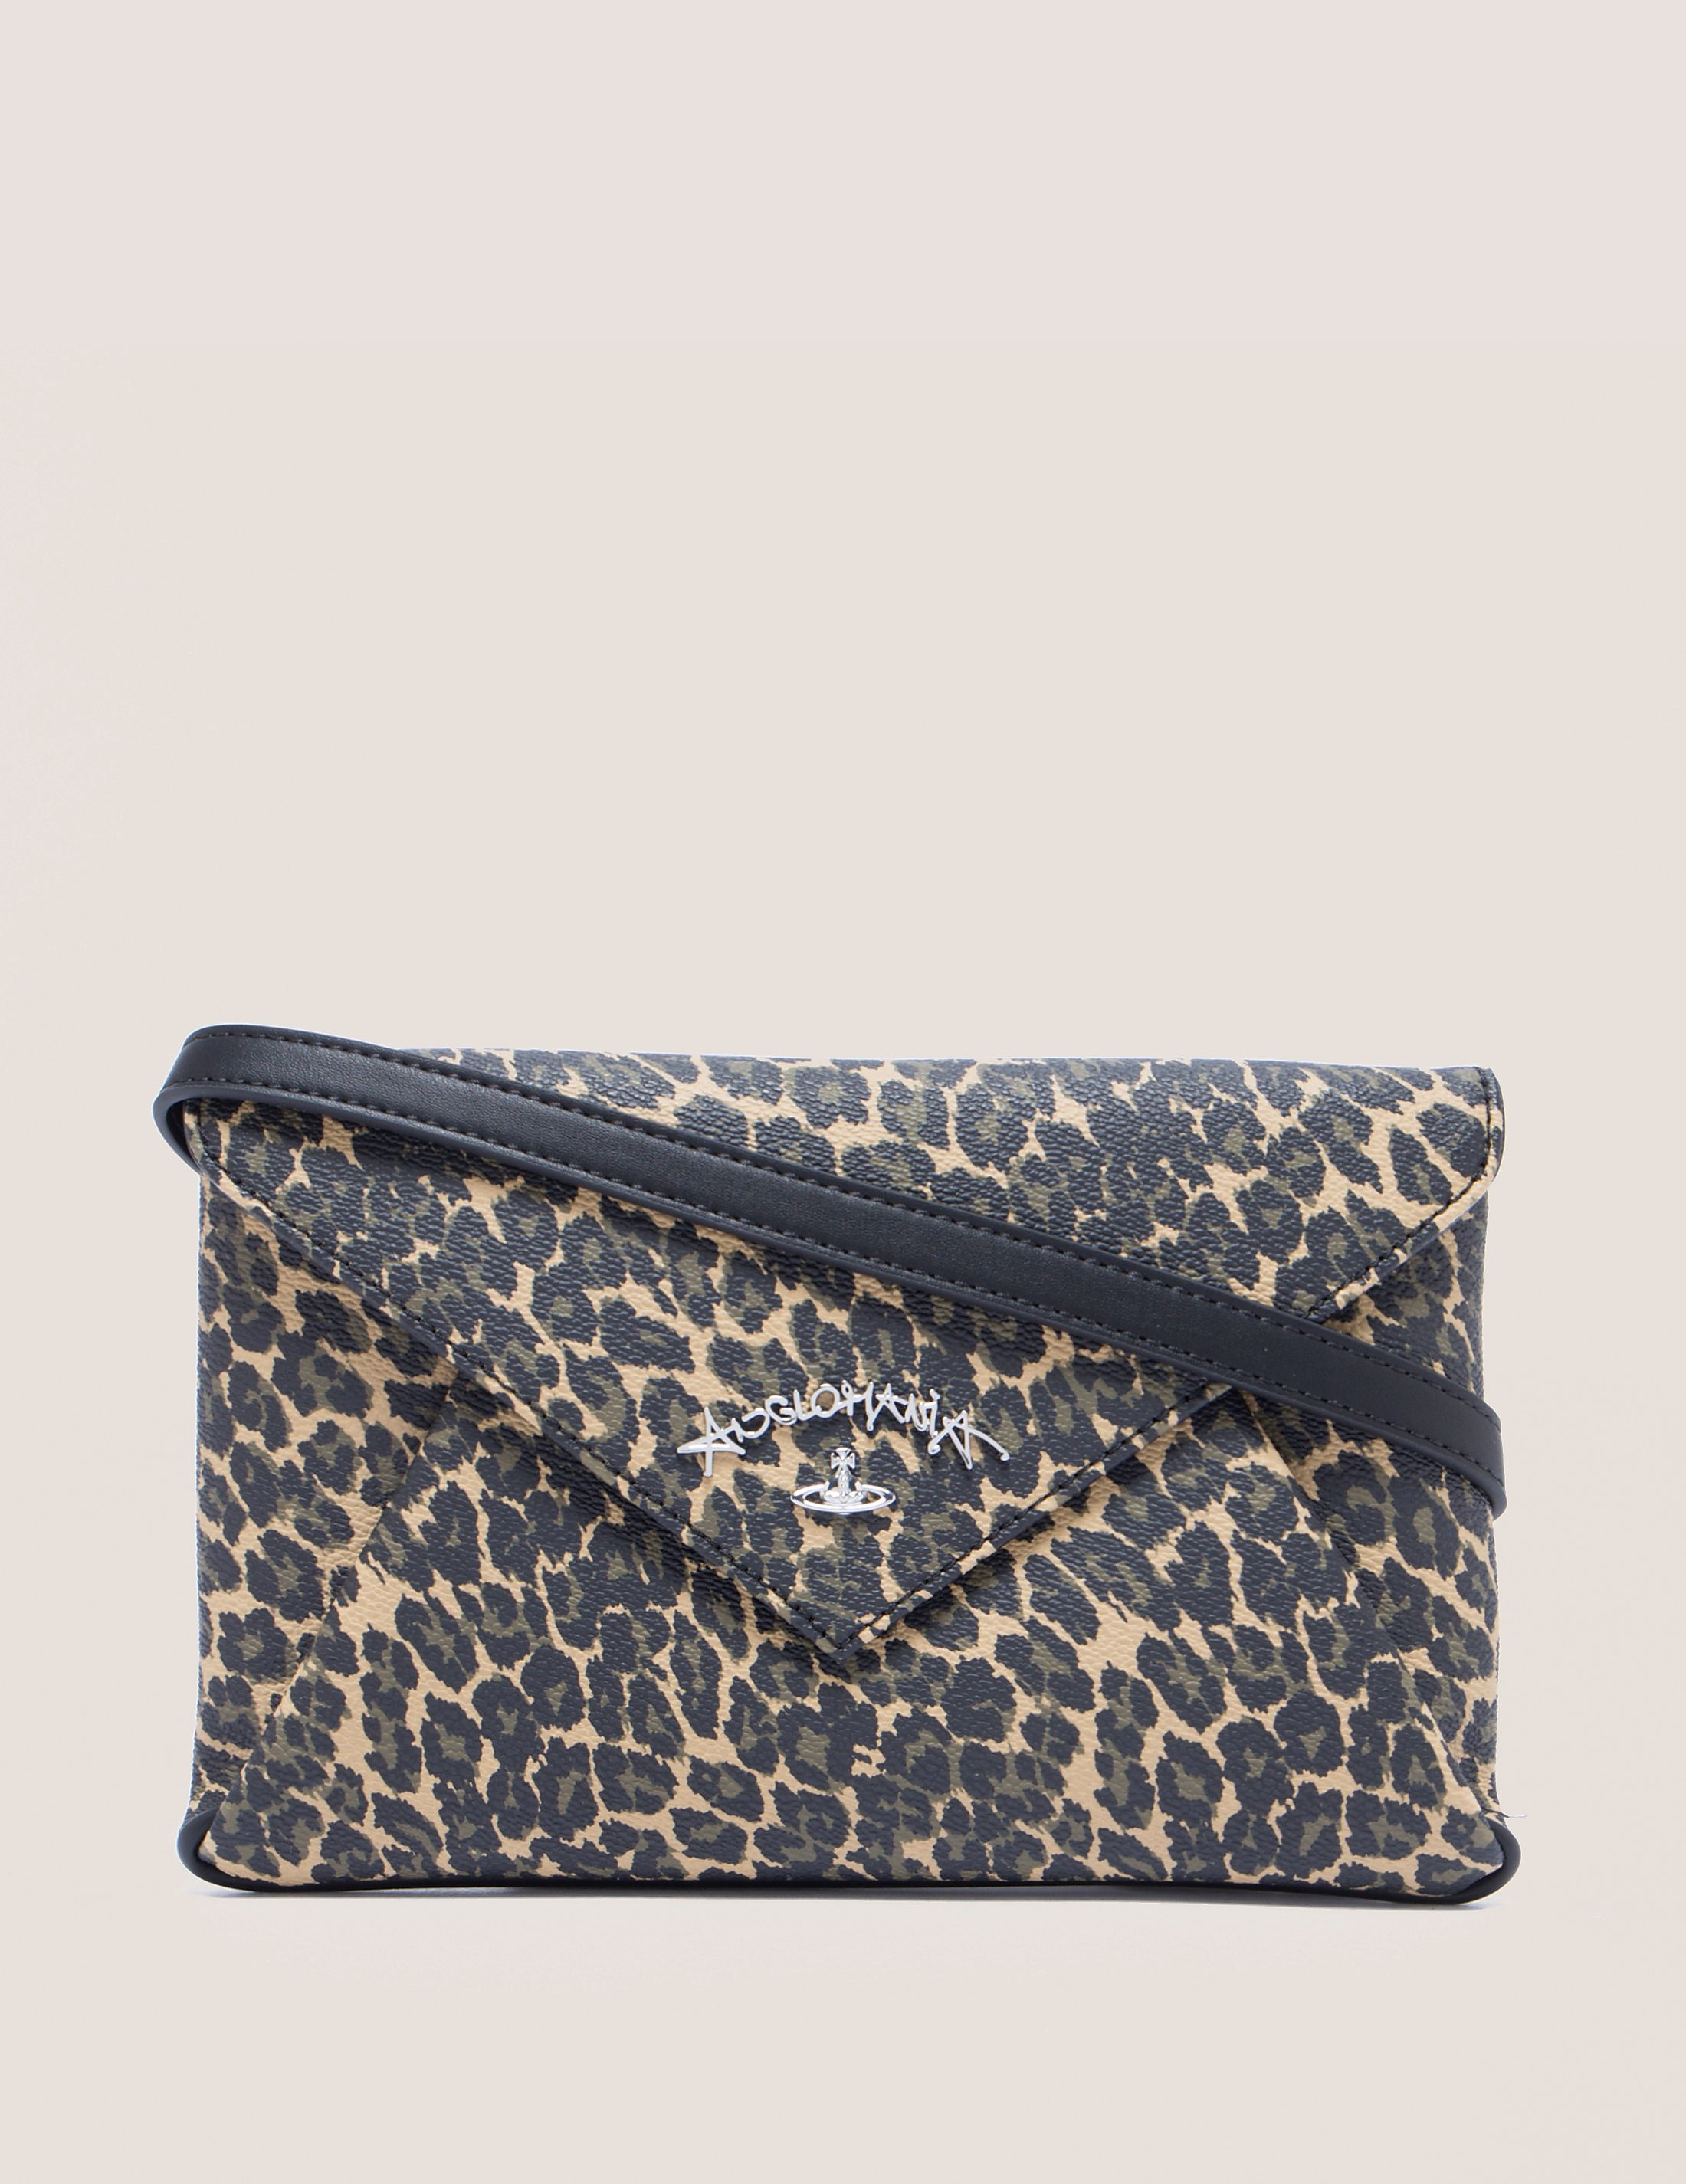 Vivienne Westwood Anglomania Envelope Crossbody Bag